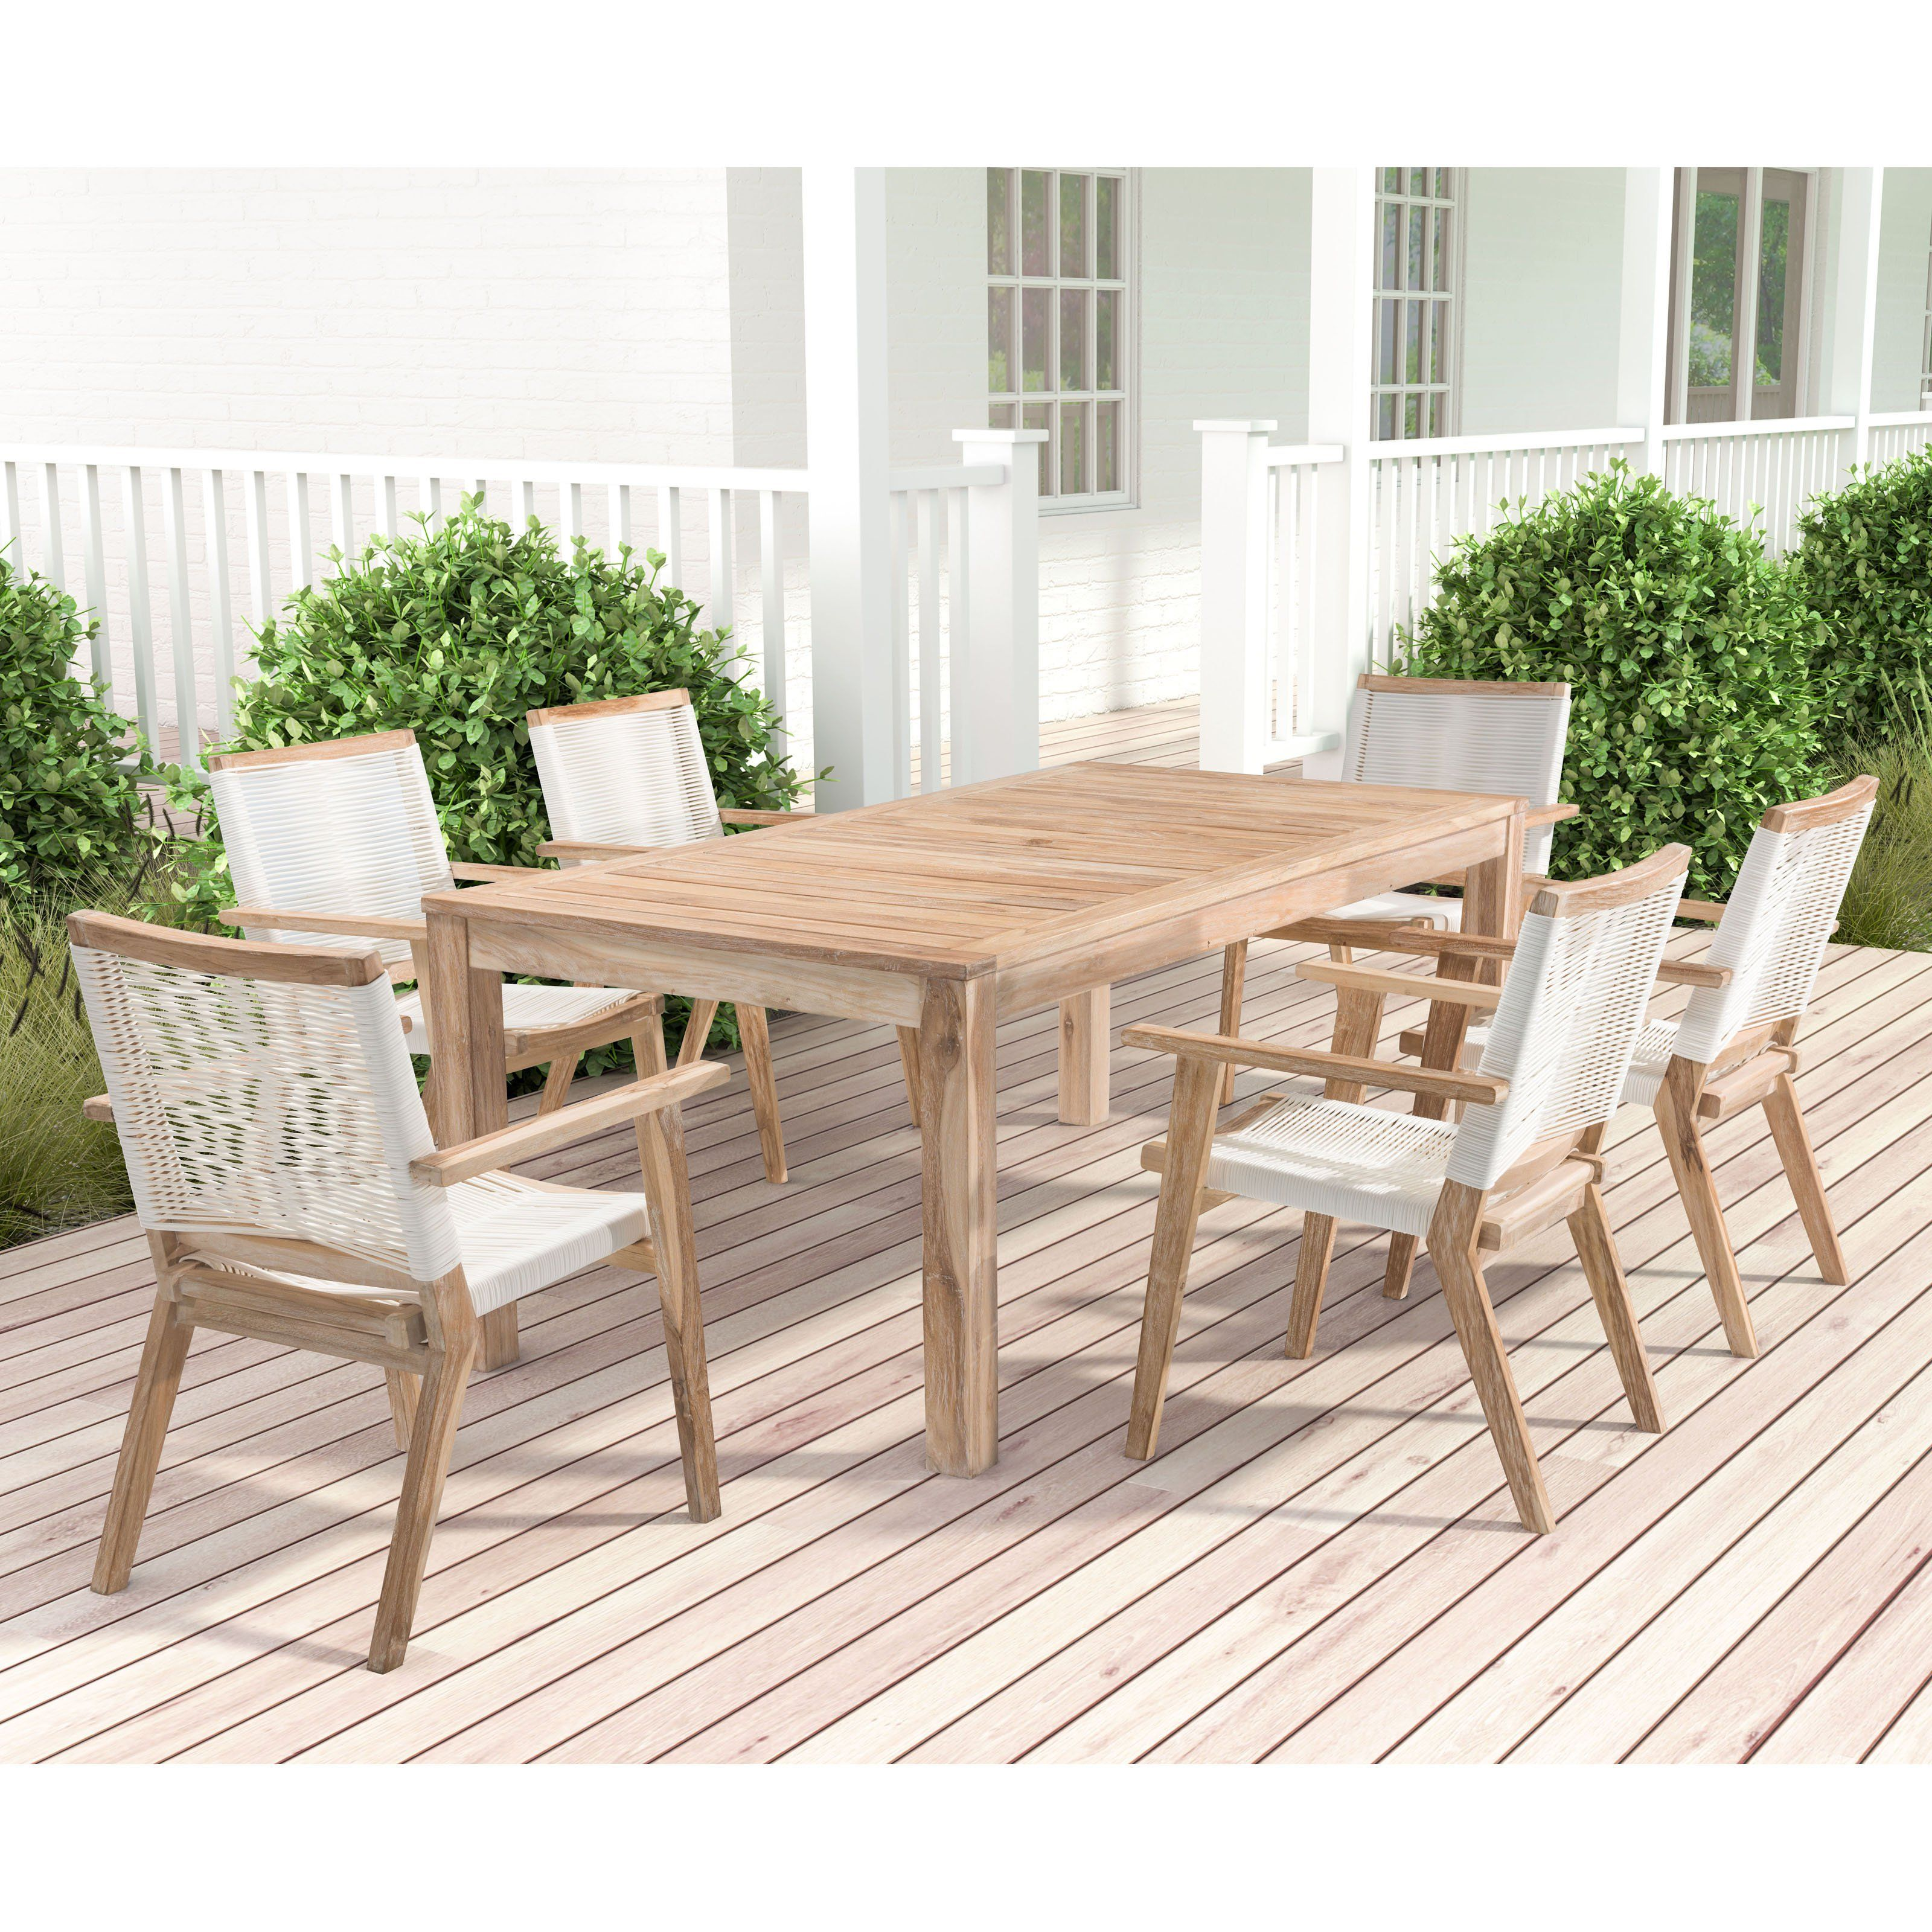 Zuo Vive West Point Teak 7 Piece Patio Rectangle Dining Set | From  Hayneedle.